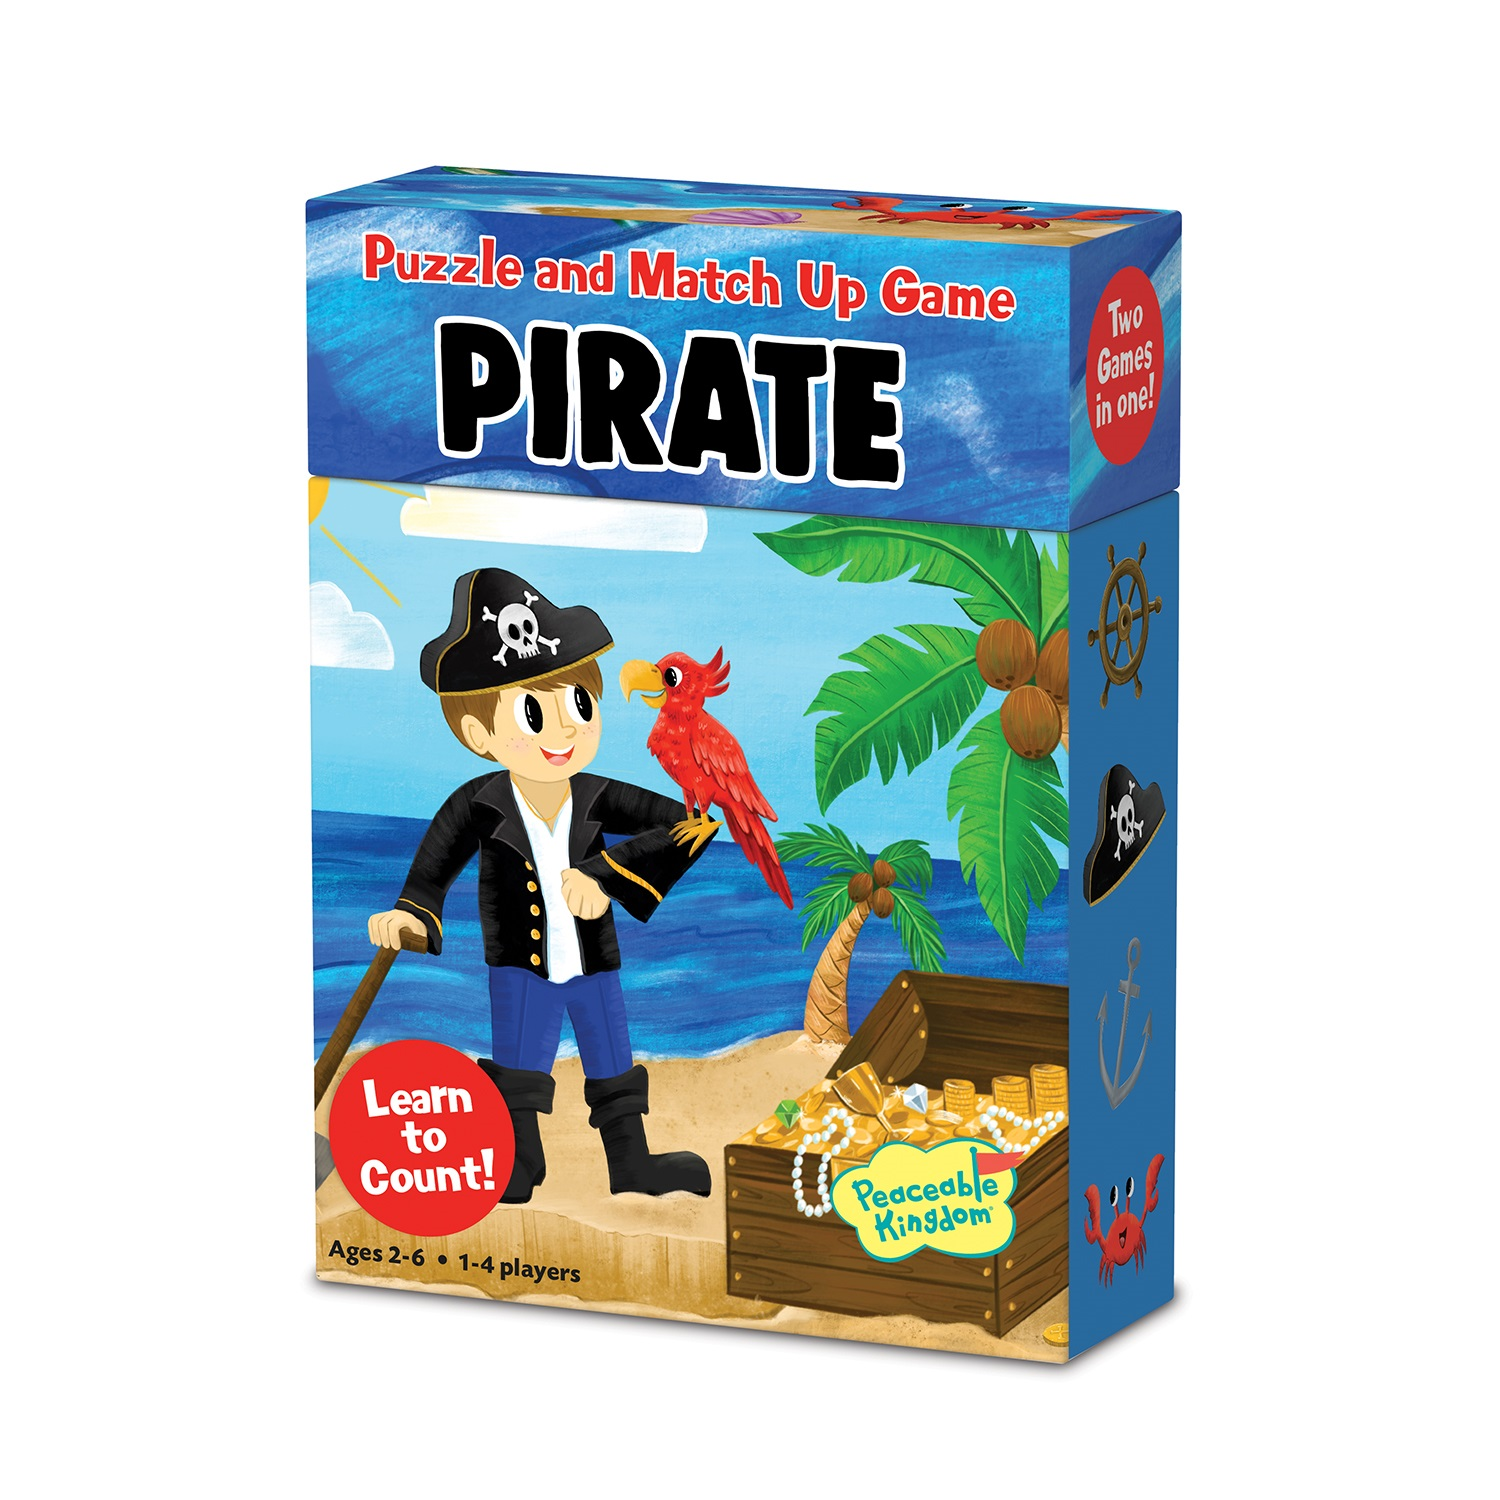 Match Up Game & Puzzle, Pirate - Learn to count by Peaceable Kingdom